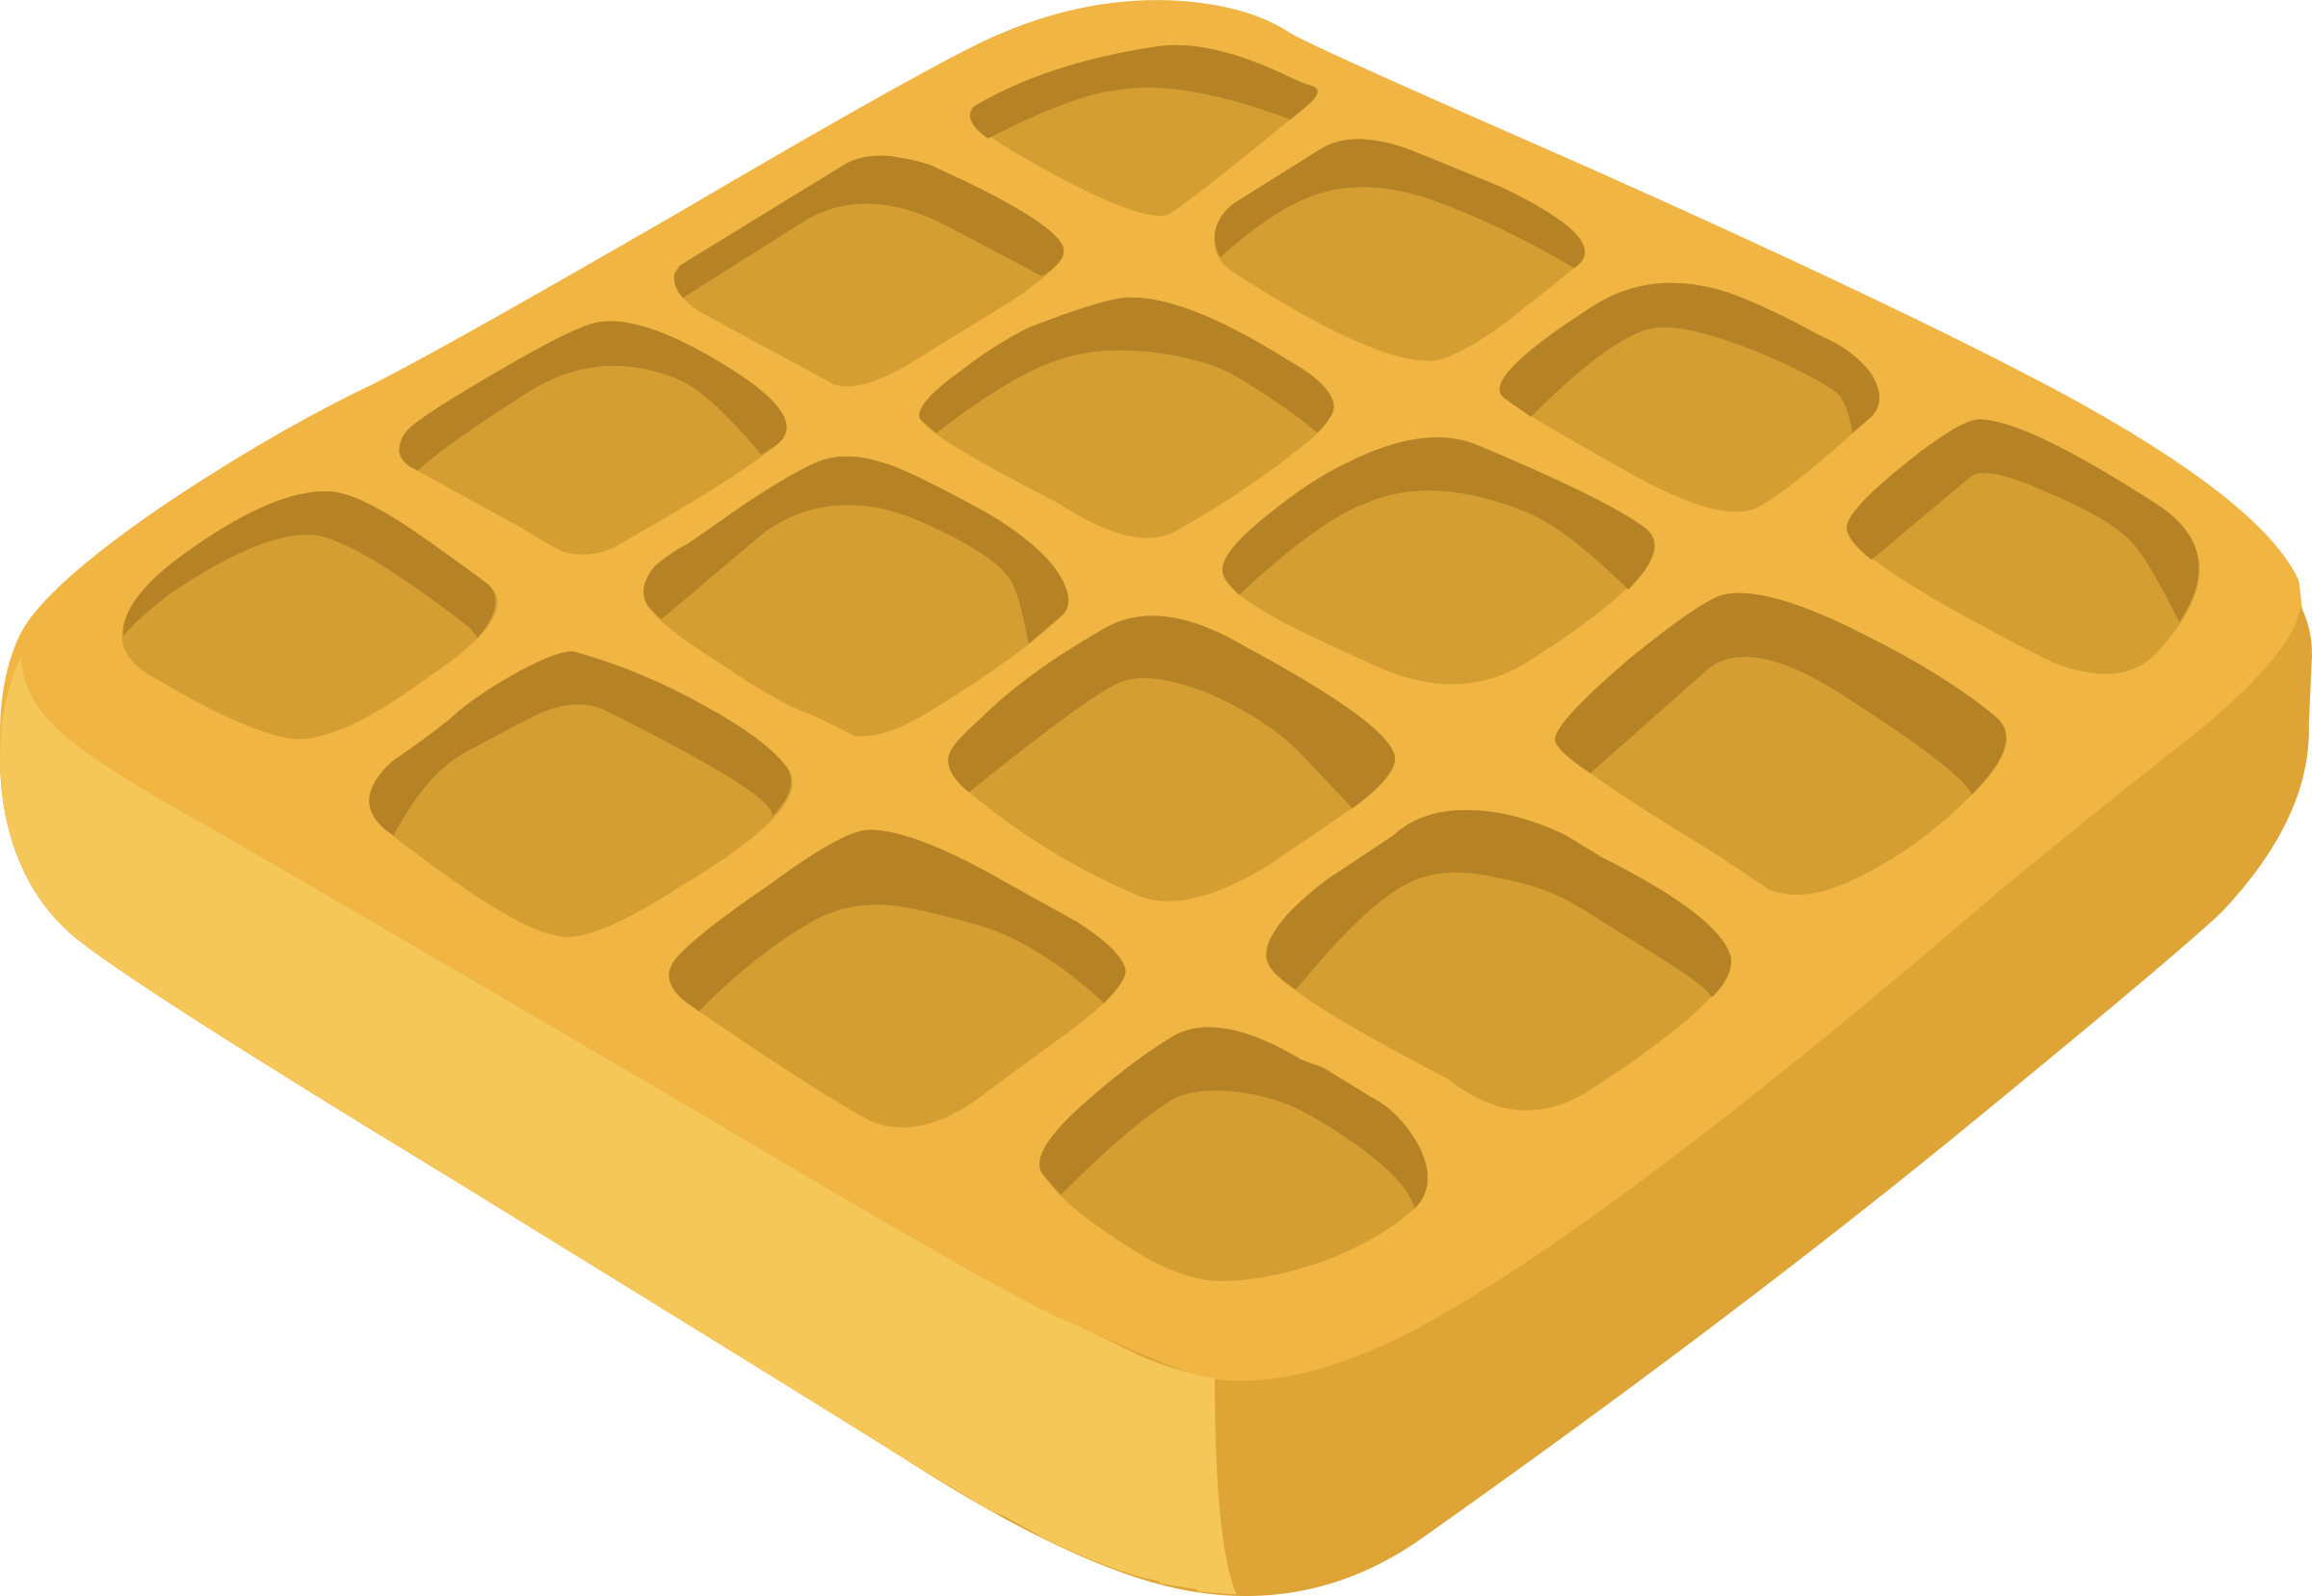 waffle clipart, transparent food clipart cliparts download #31874